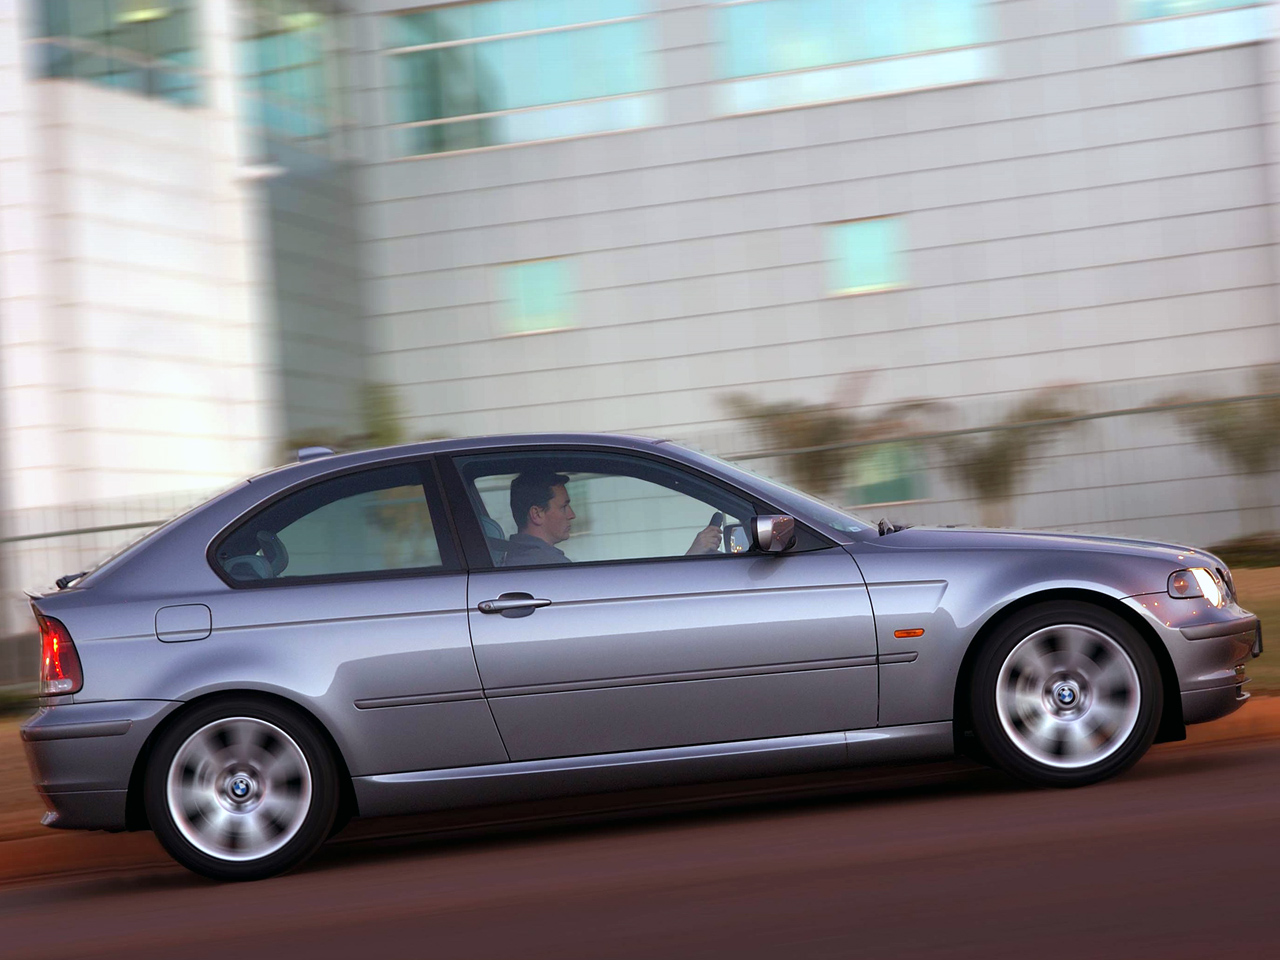 BMW 3 series 325ti 2001 photo - 8